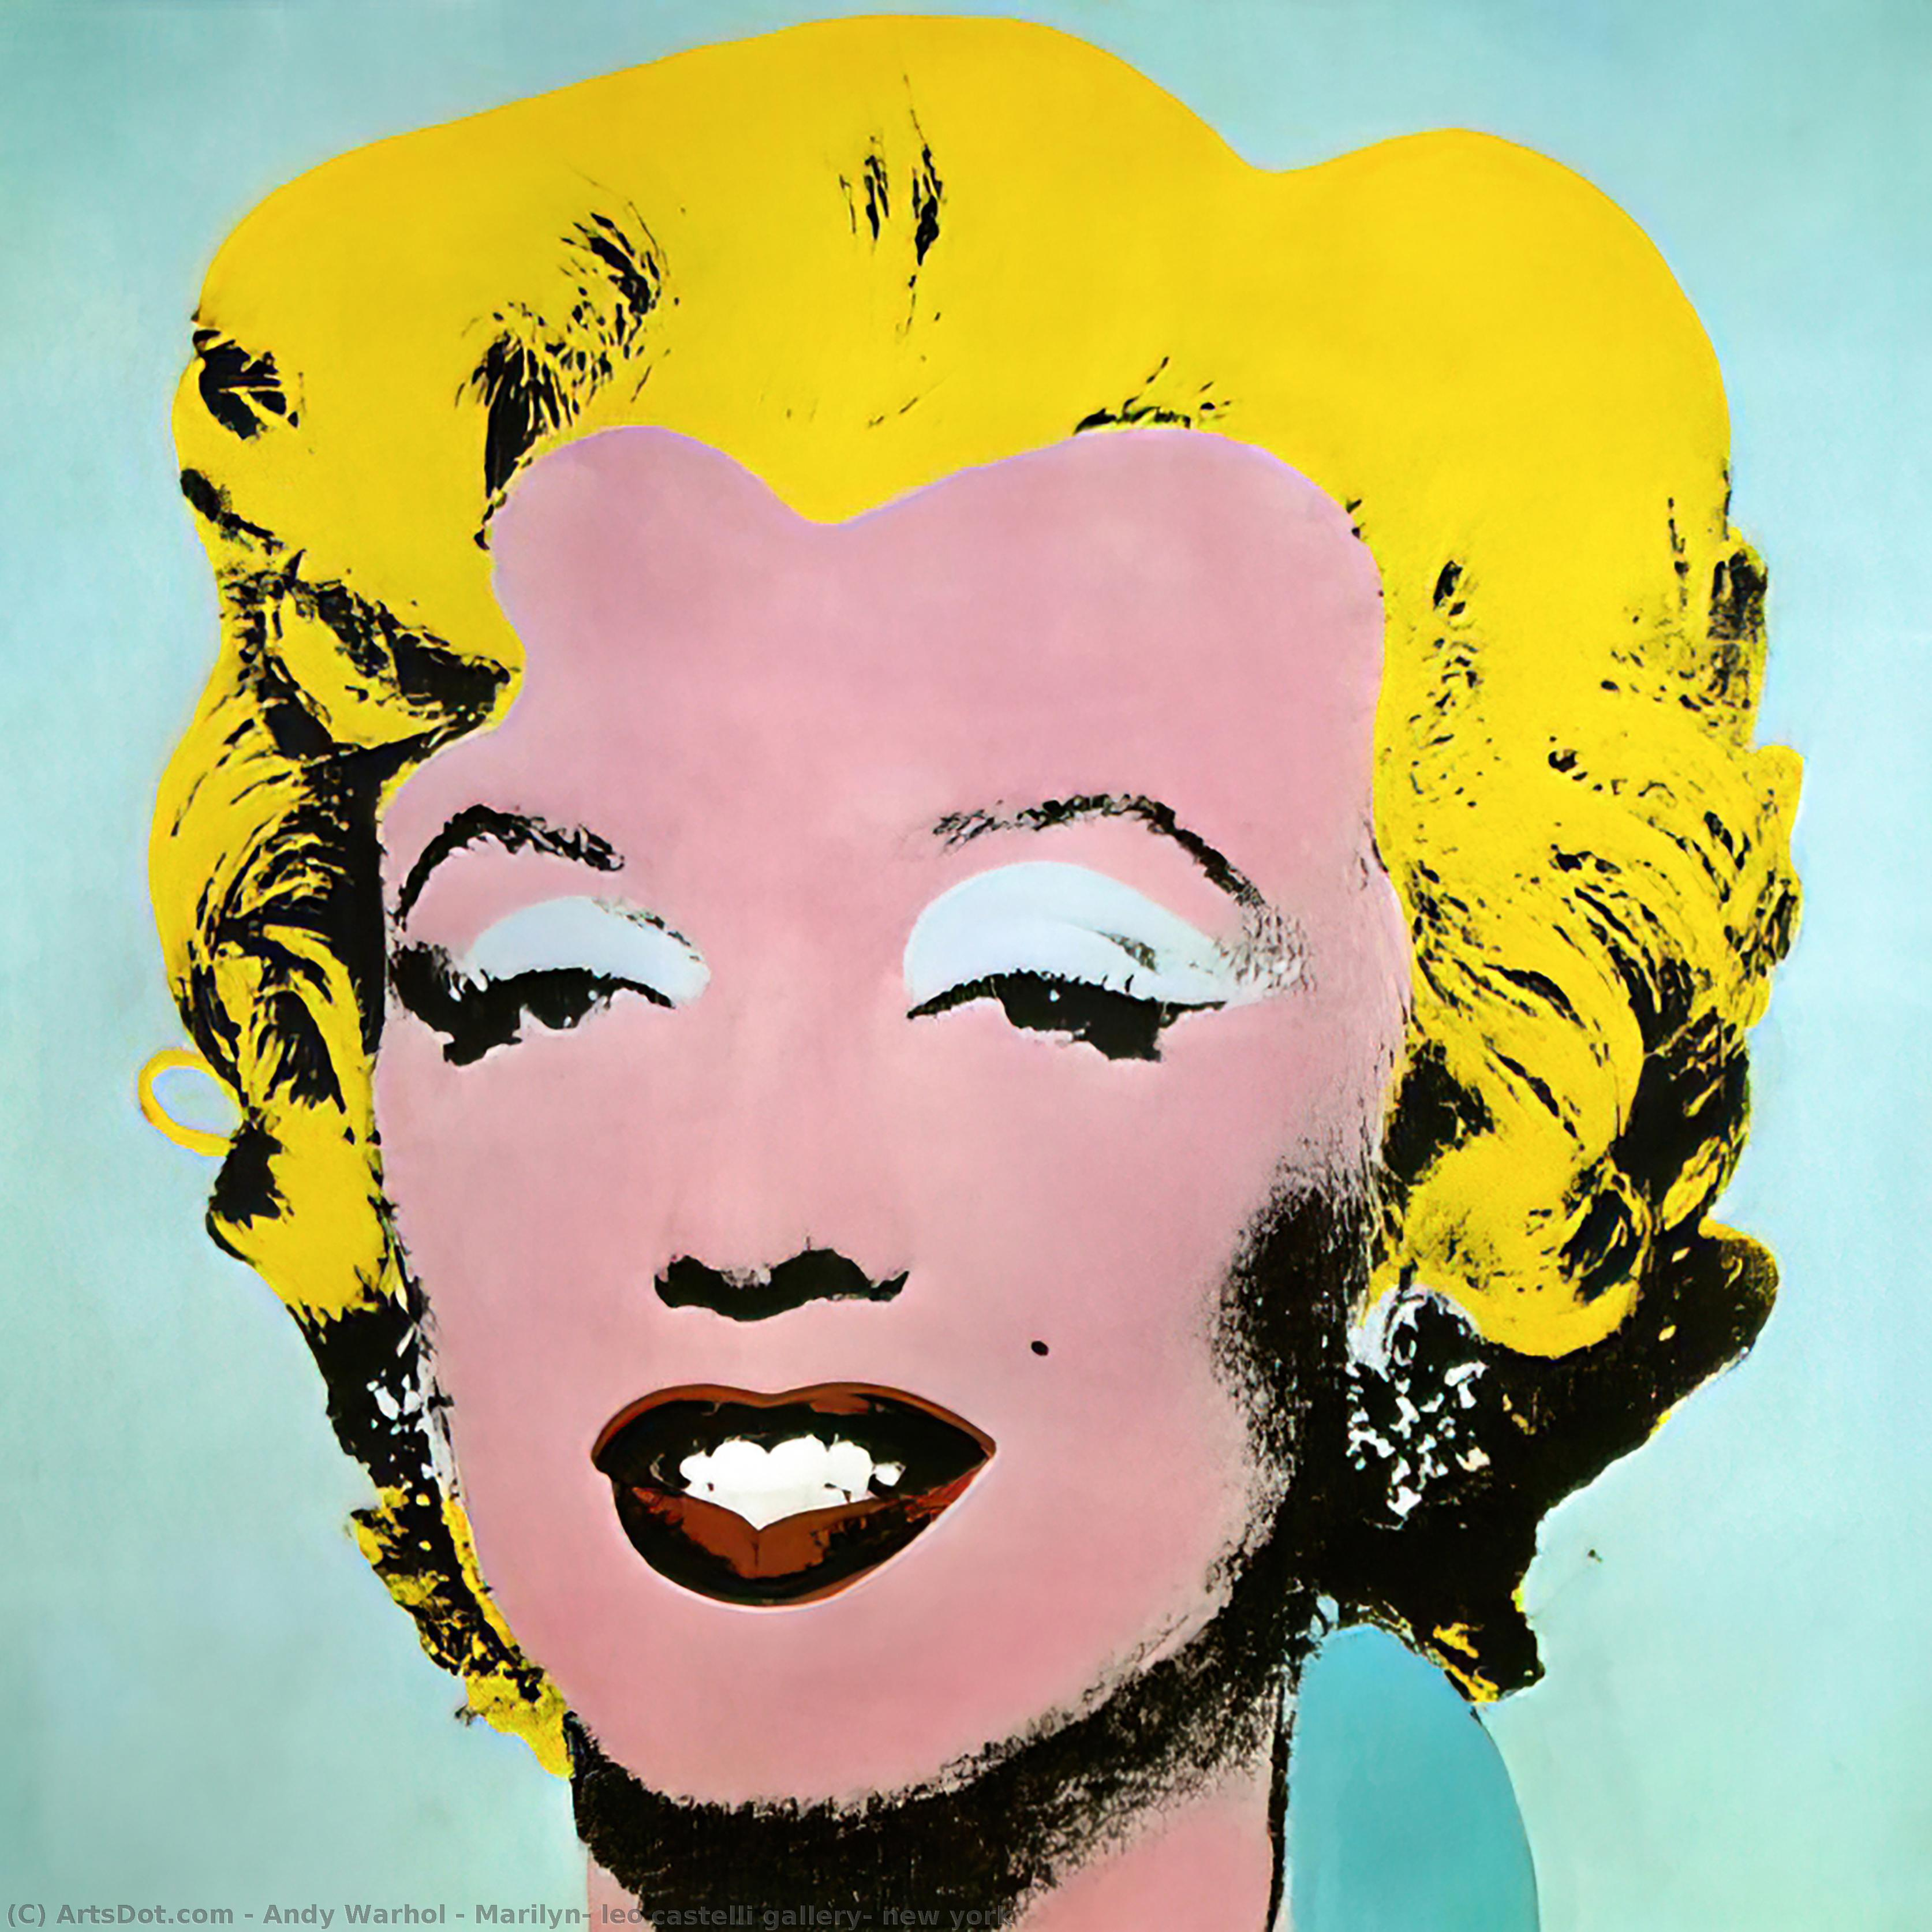 Wikioo.org - The Encyclopedia of Fine Arts - Painting, Artwork by Andy Warhol - Marilyn, leo castelli gallery, new york